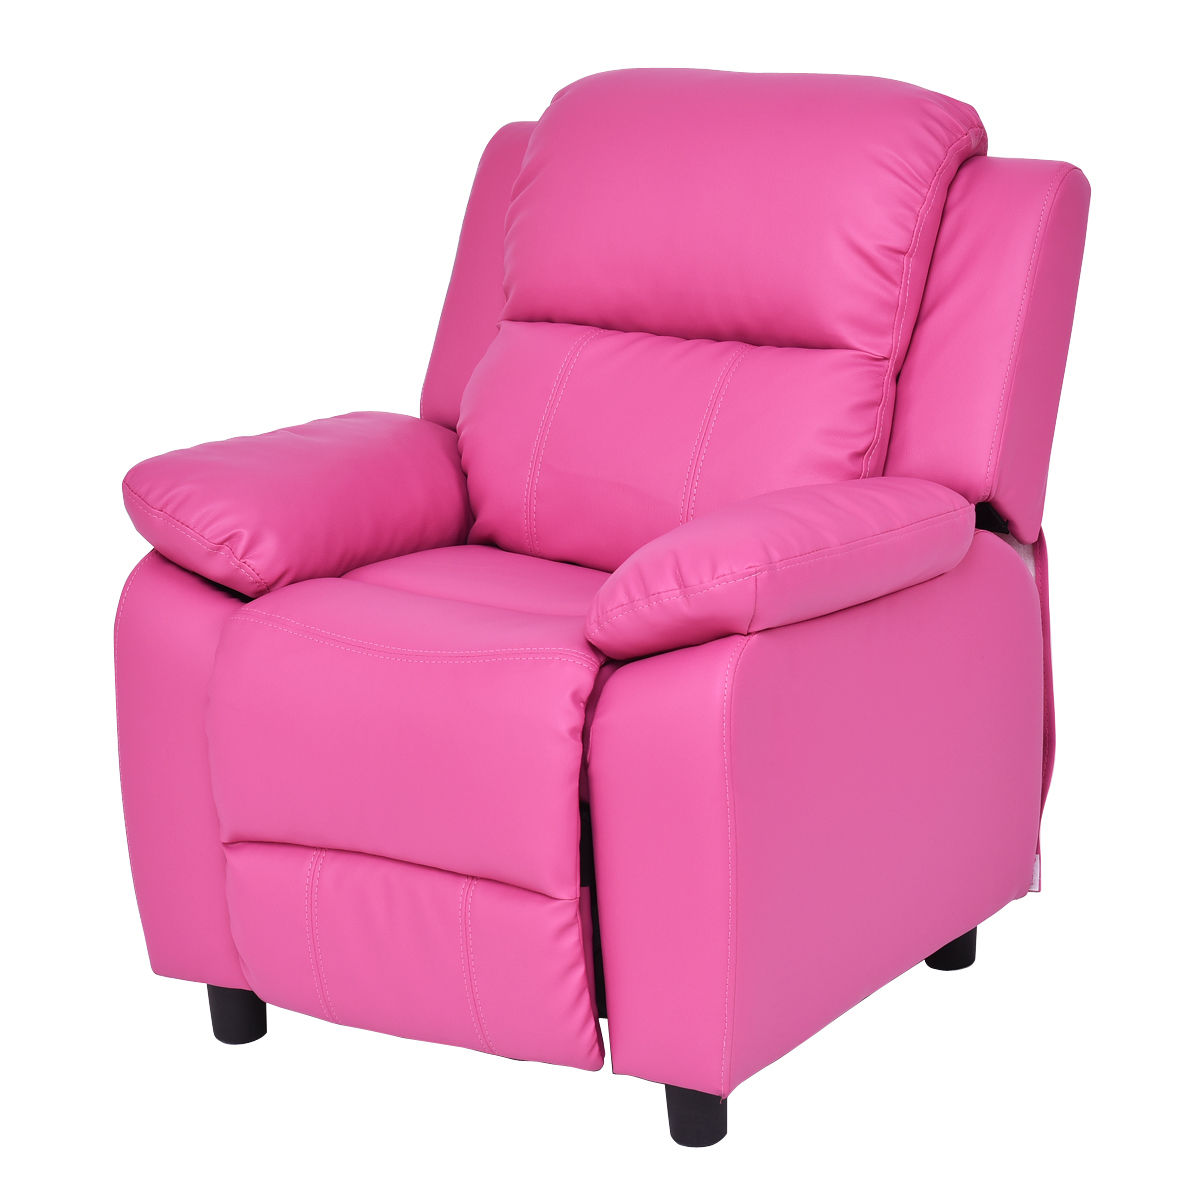 Costway Kids Recliner Sofa Armrest Chair Couch Lounge Children Living Room Furniture rose red  sc 1 st  Walmart : mini recliner chairs - islam-shia.org